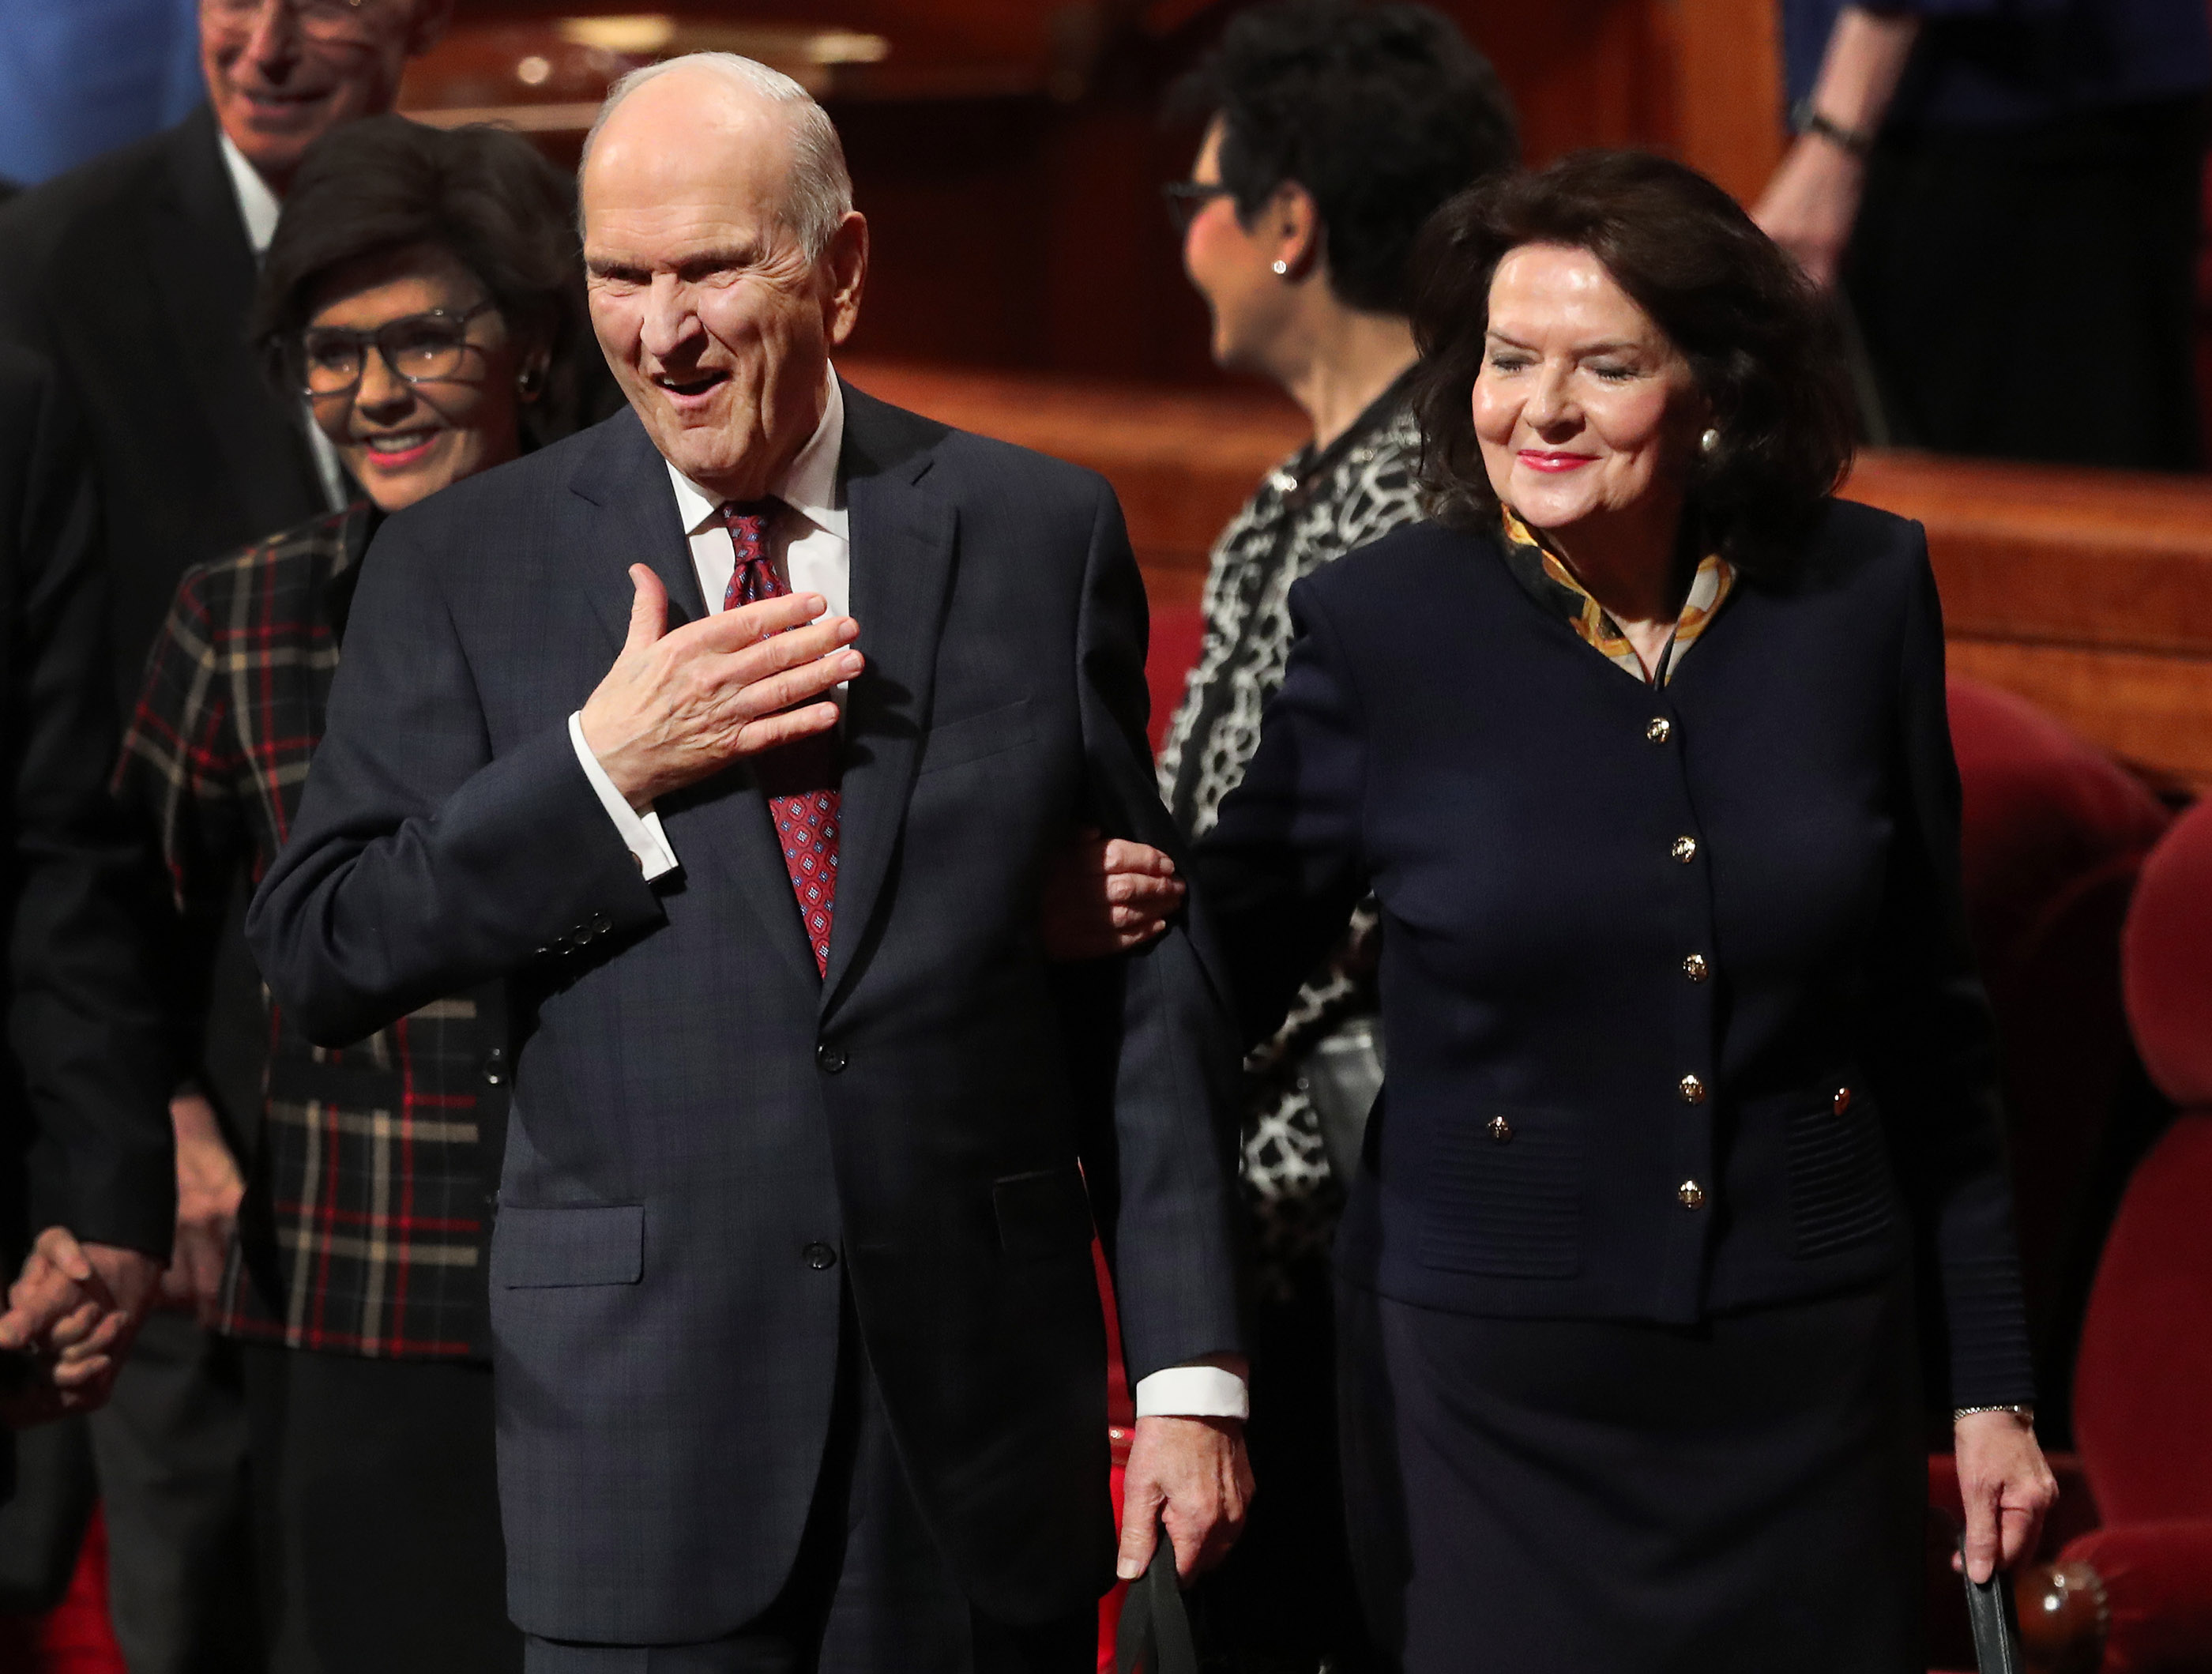 President Russell M. Nelson gestures to attendees along with his wife, Sister Wendy Nelson, after the Sunday afternoon session of the 188th Semiannual General Conference of The Church of Jesus Christ of Latter-day Saints in the Conference Center in downtown Salt Lake City on Sunday, Oct. 7, 2018.